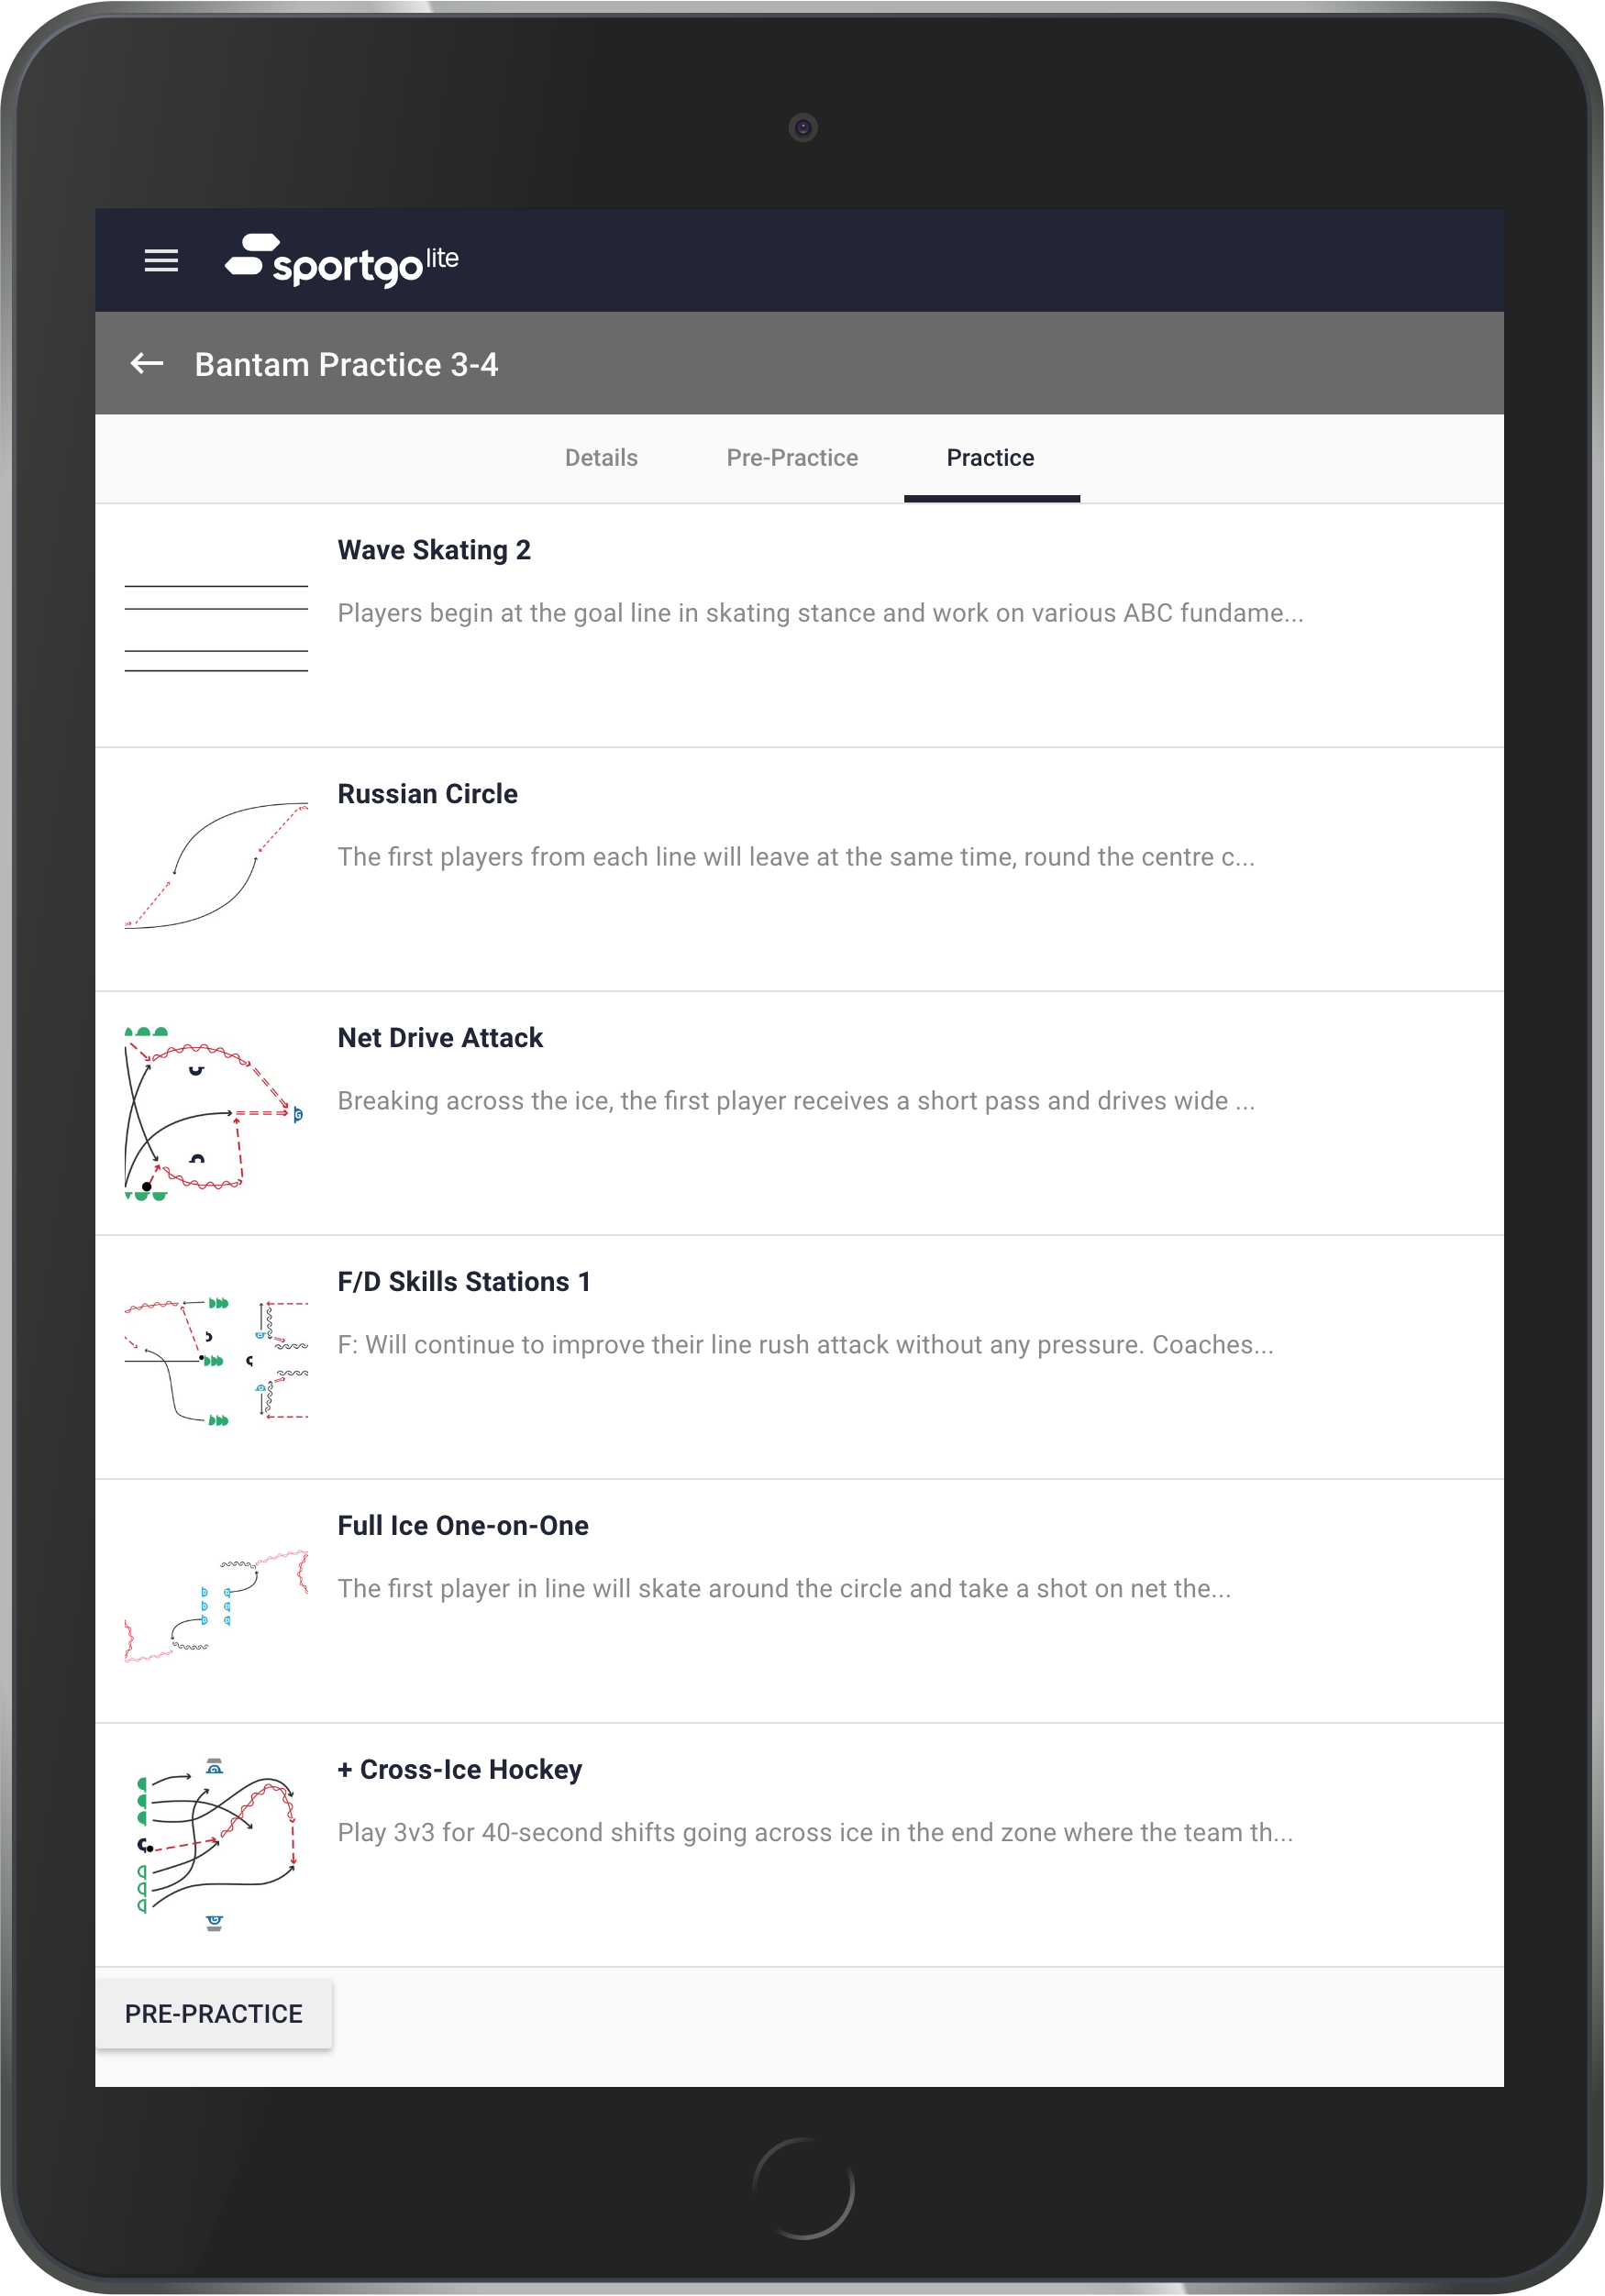 Practice Plans - Streamline your team's training with highly personalized practice plans designed by today's best coaches.